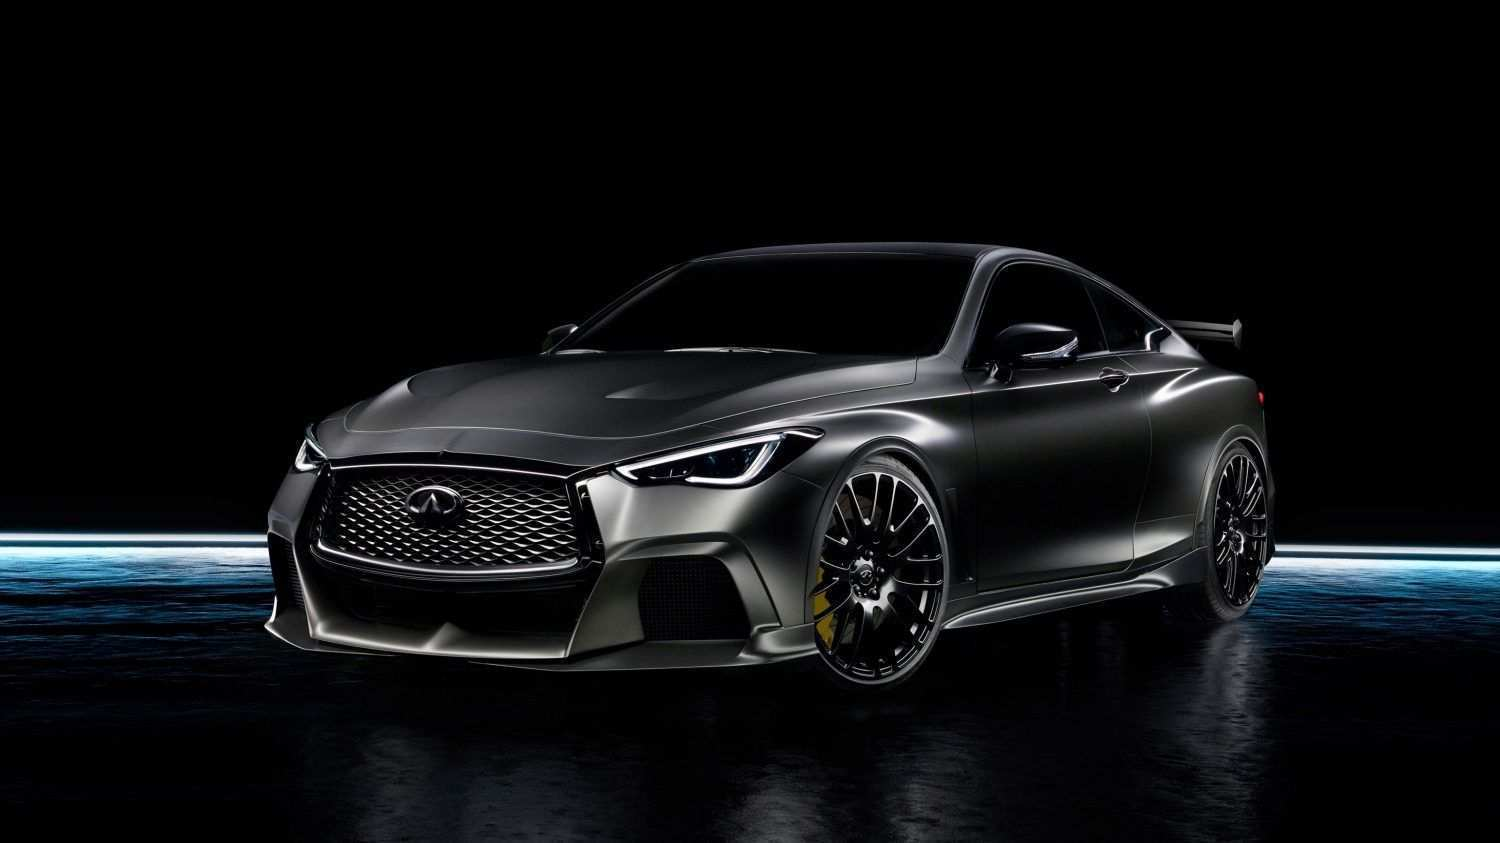 59 All New What S New For Infiniti In 2020 Interior